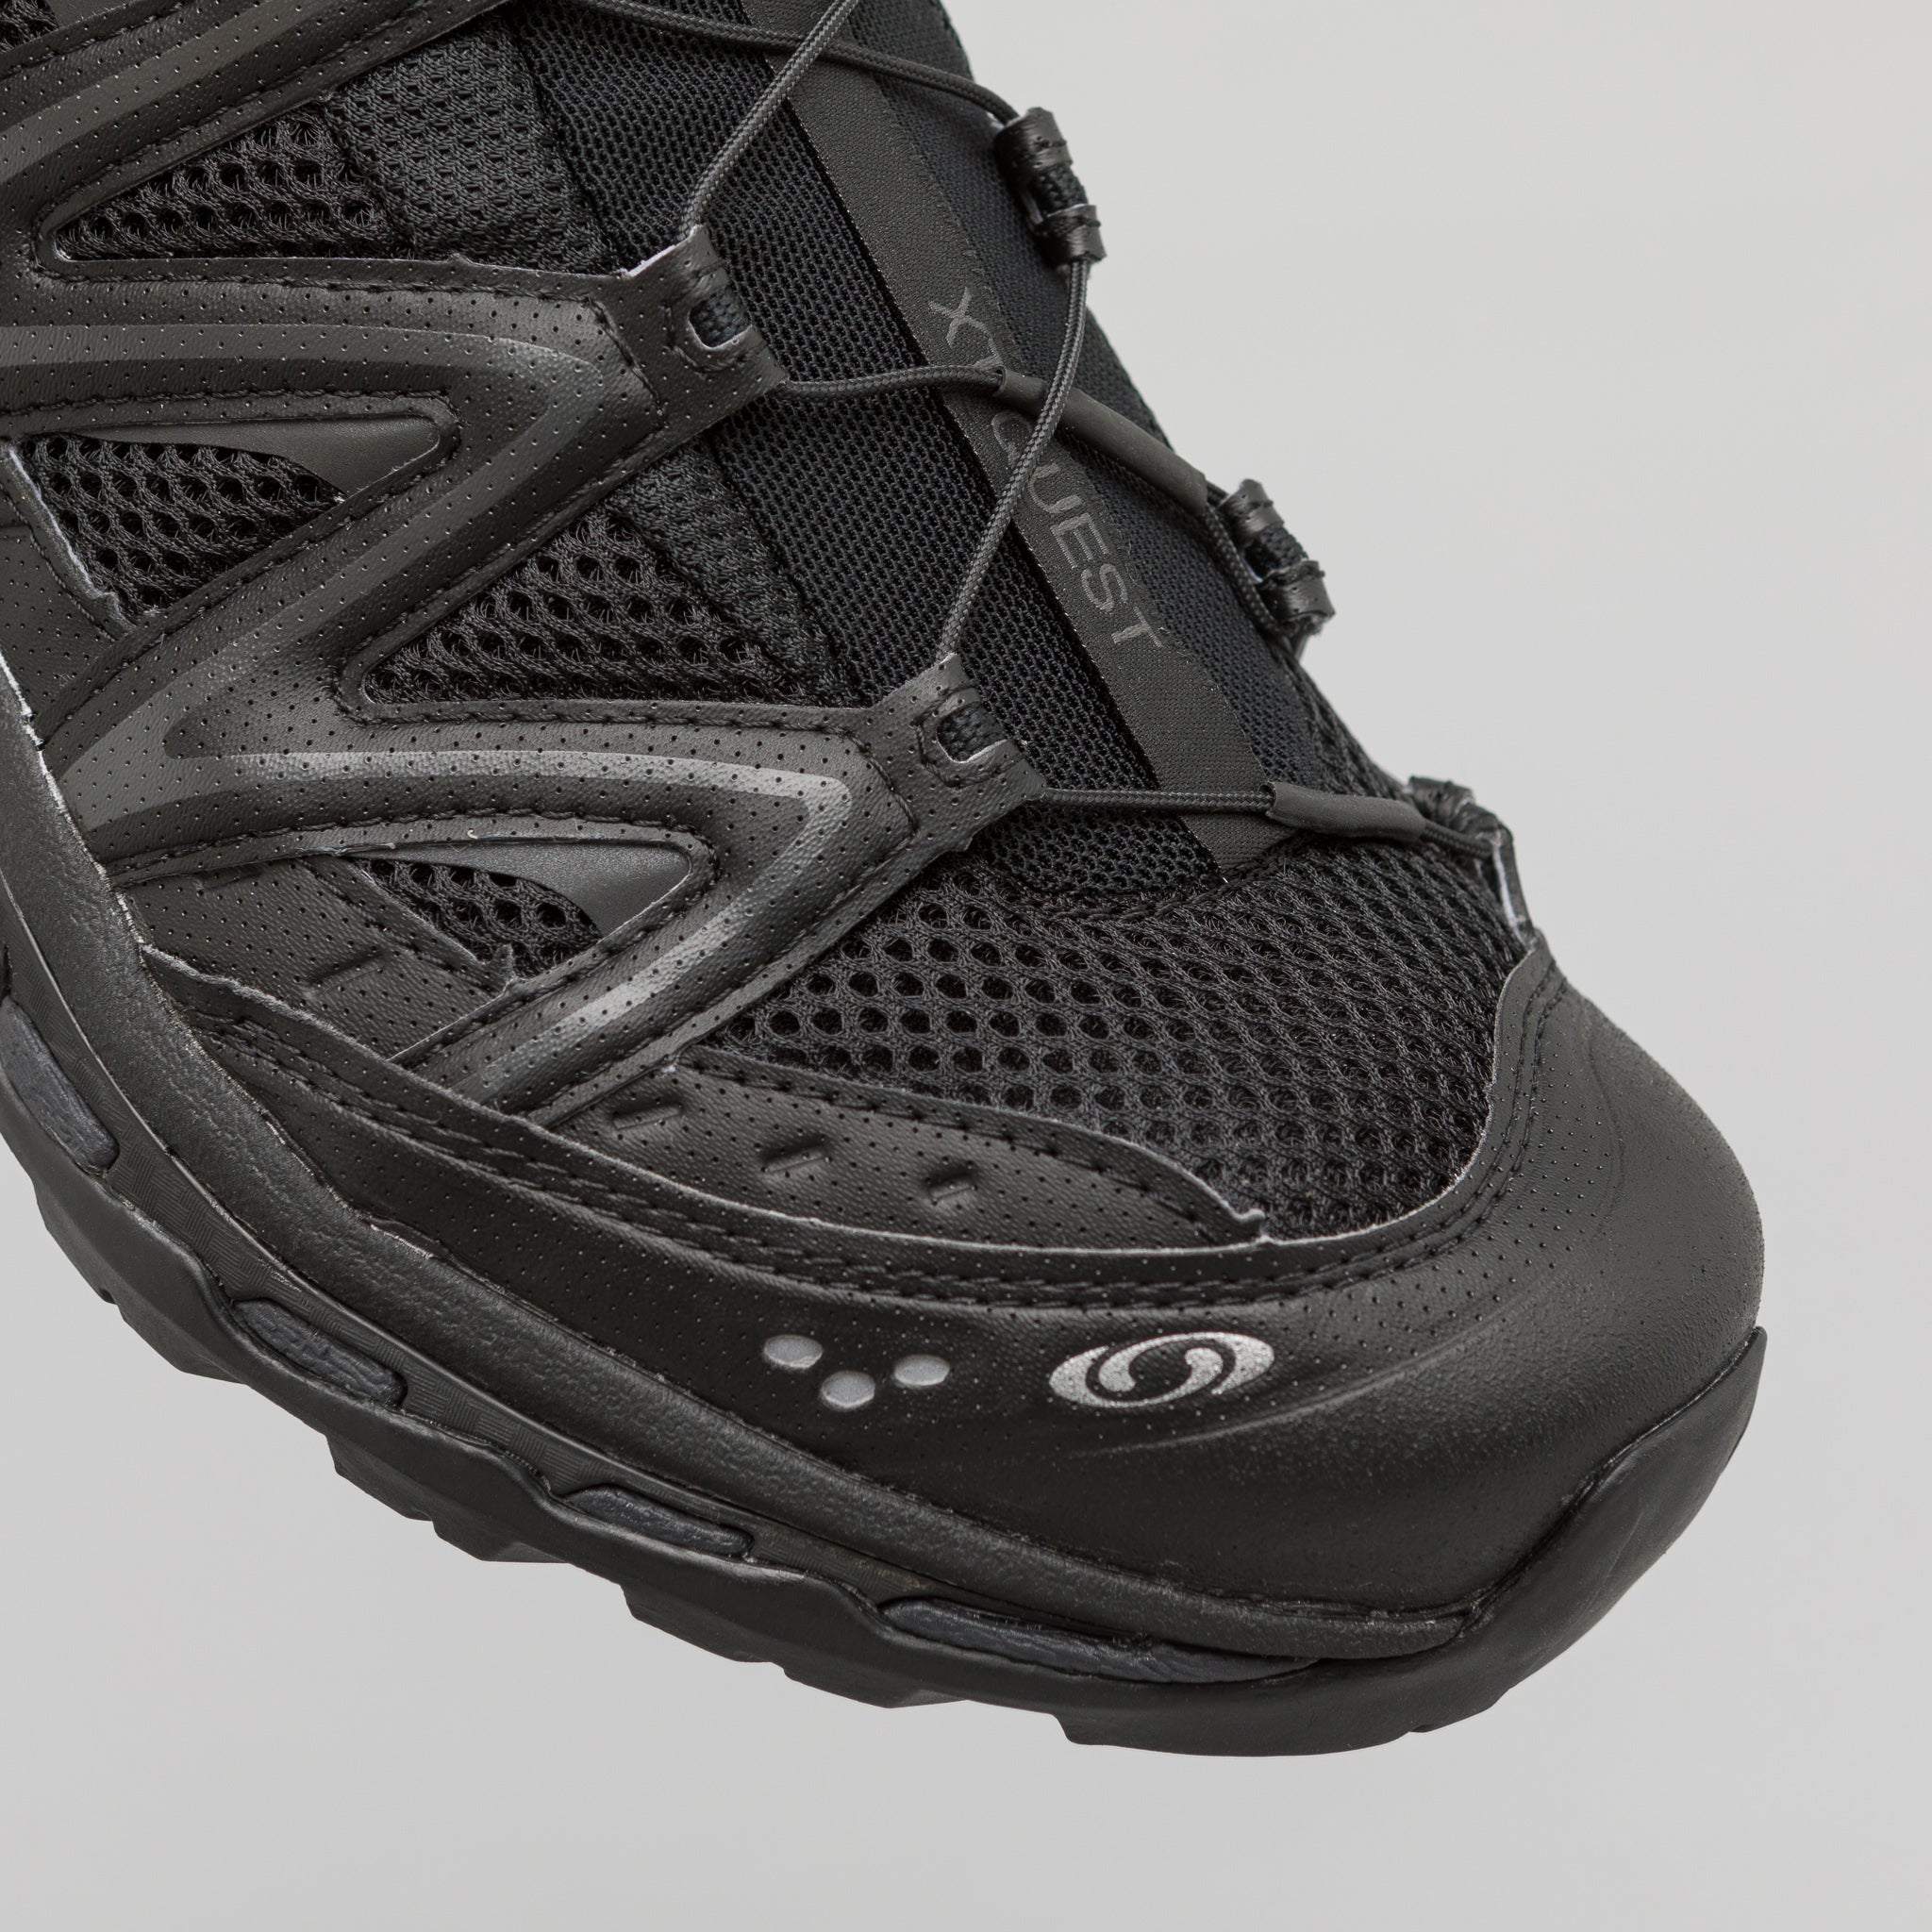 XT-Quest ADV in Black/Phantom